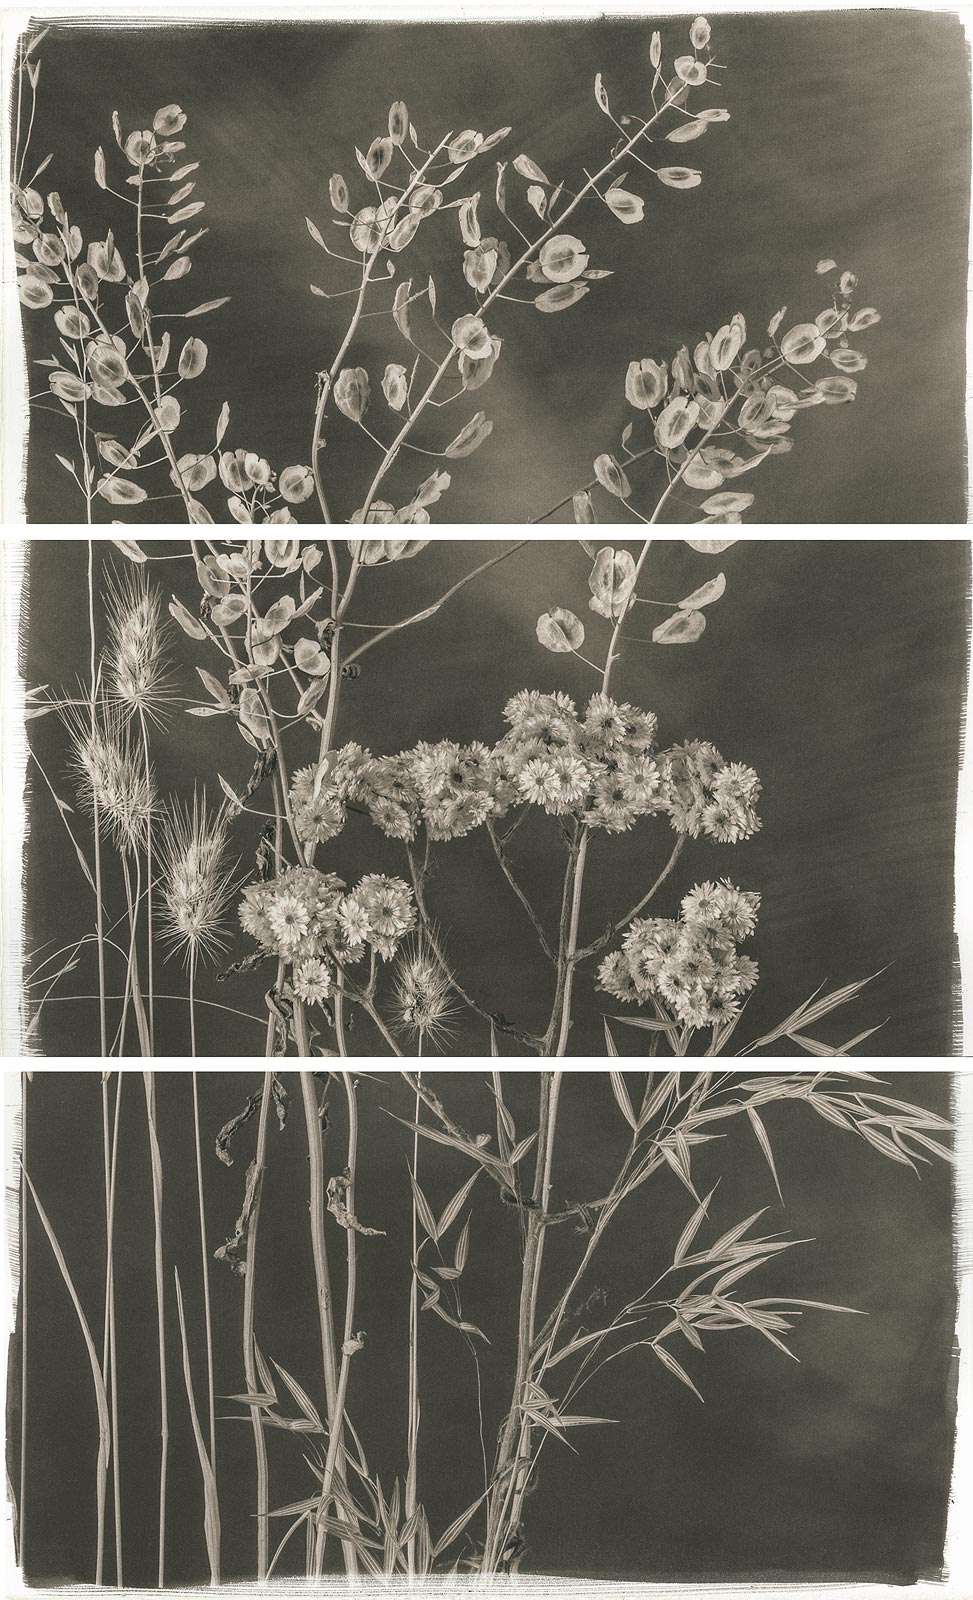 Carnochan, Valley Grasses V